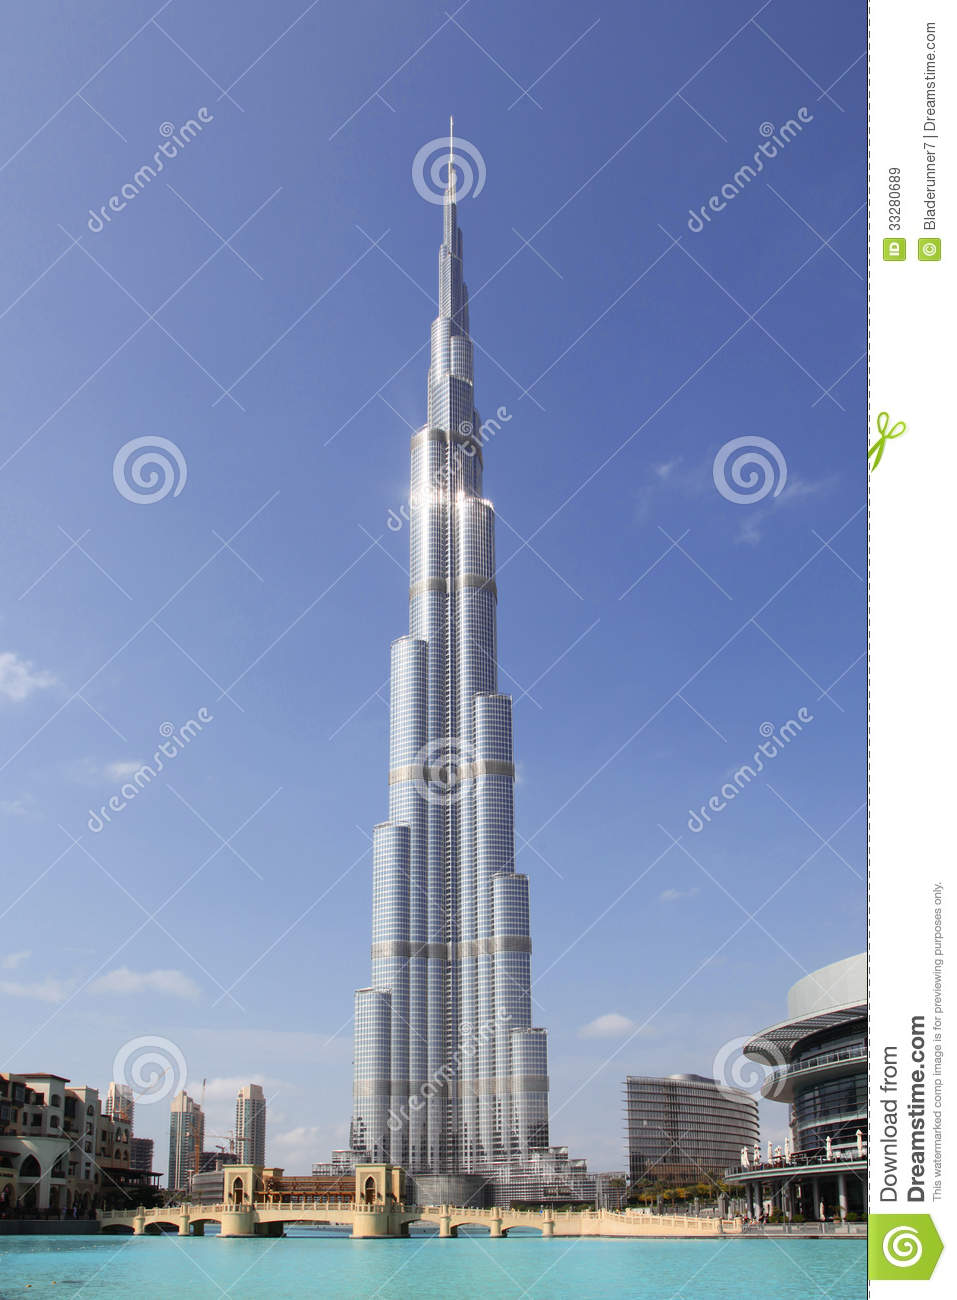 Vertical photo of the tallest building in the world - Burj Khalifa    Uae Tallest Building In The World